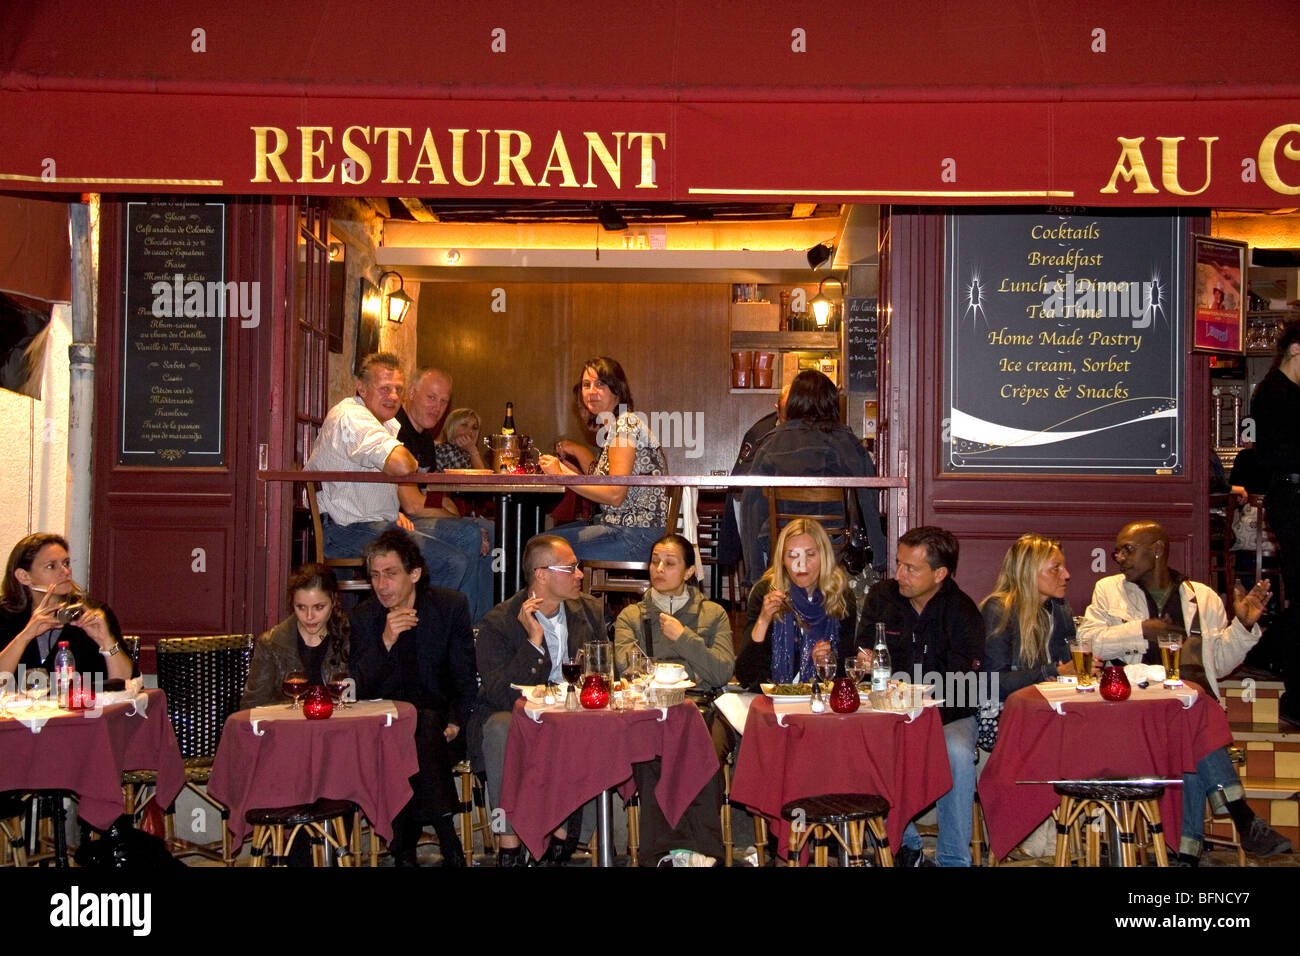 Restaurant exterior and nightlife in the Montmartre District of Paris, France. - Stock Image